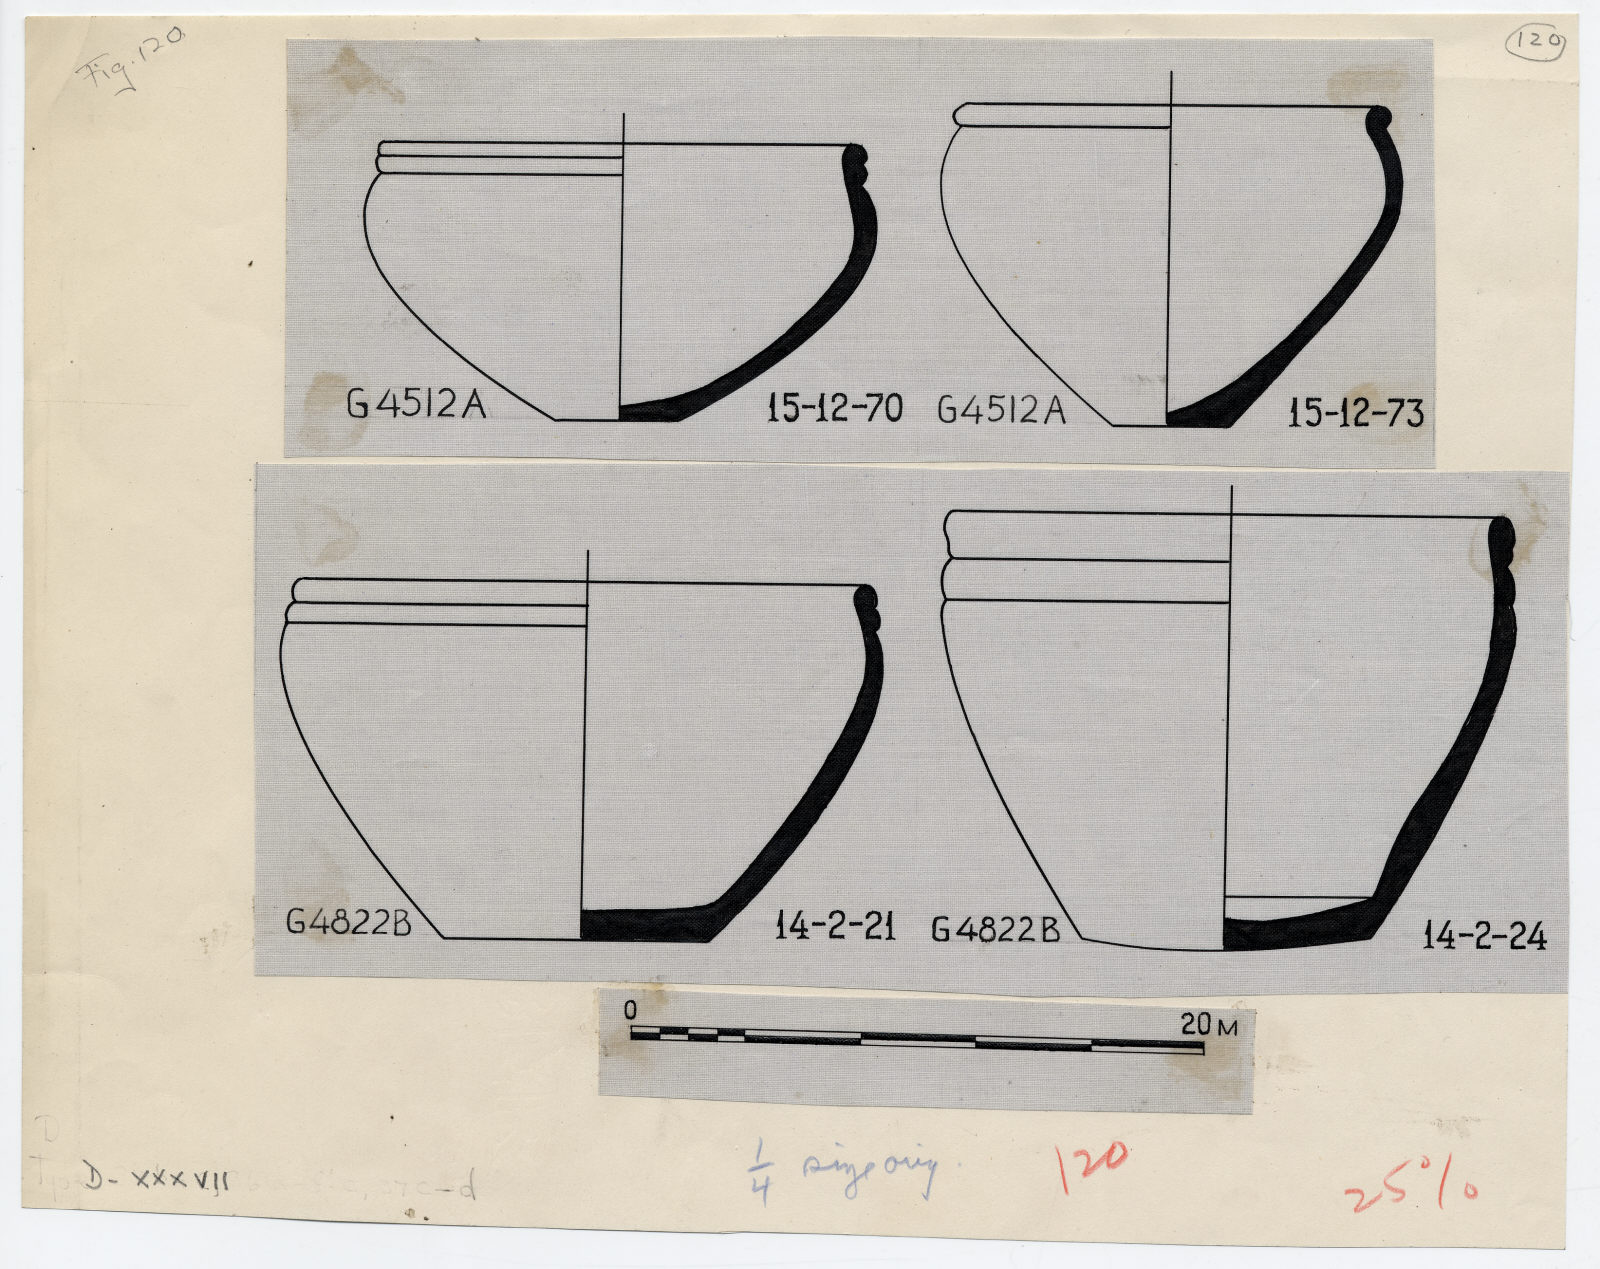 Drawings: Pottery from G 4512 and G 4822